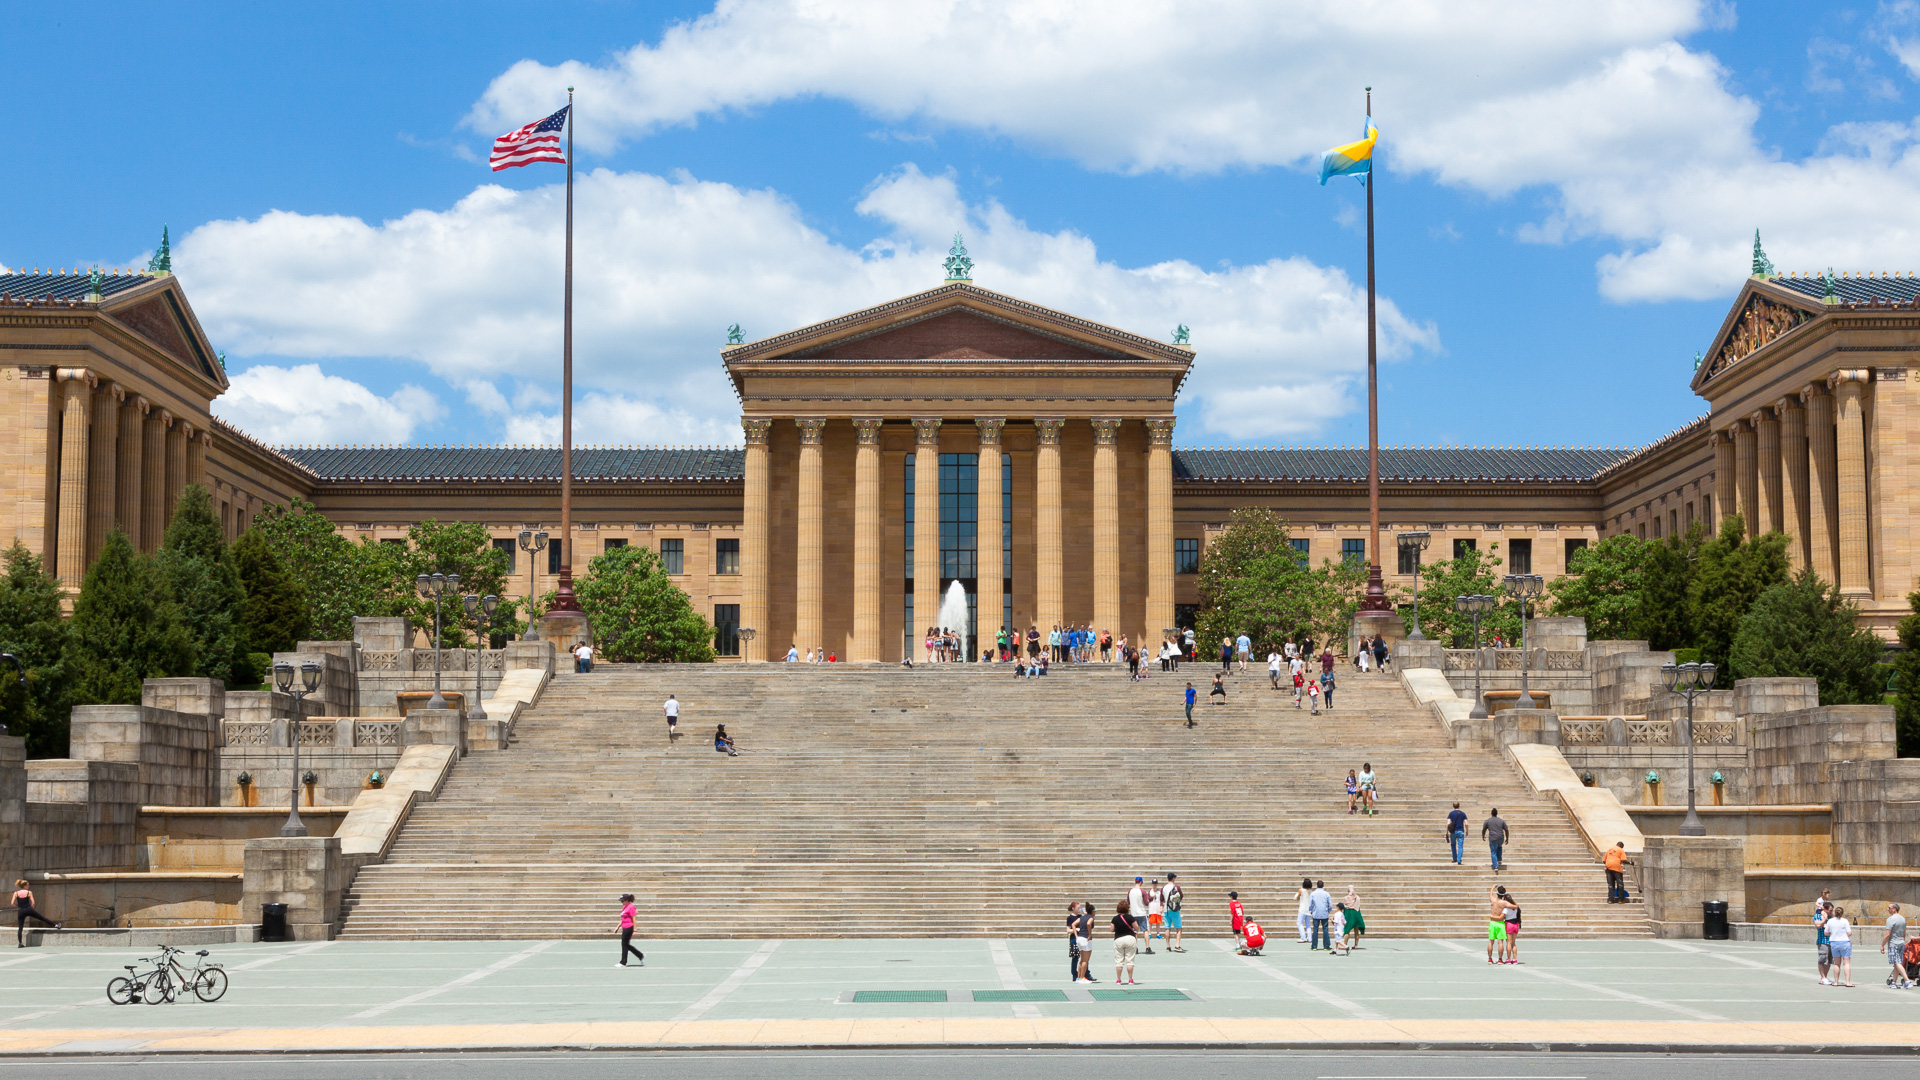 Philadelphia Museum of Art in Pennsylvania